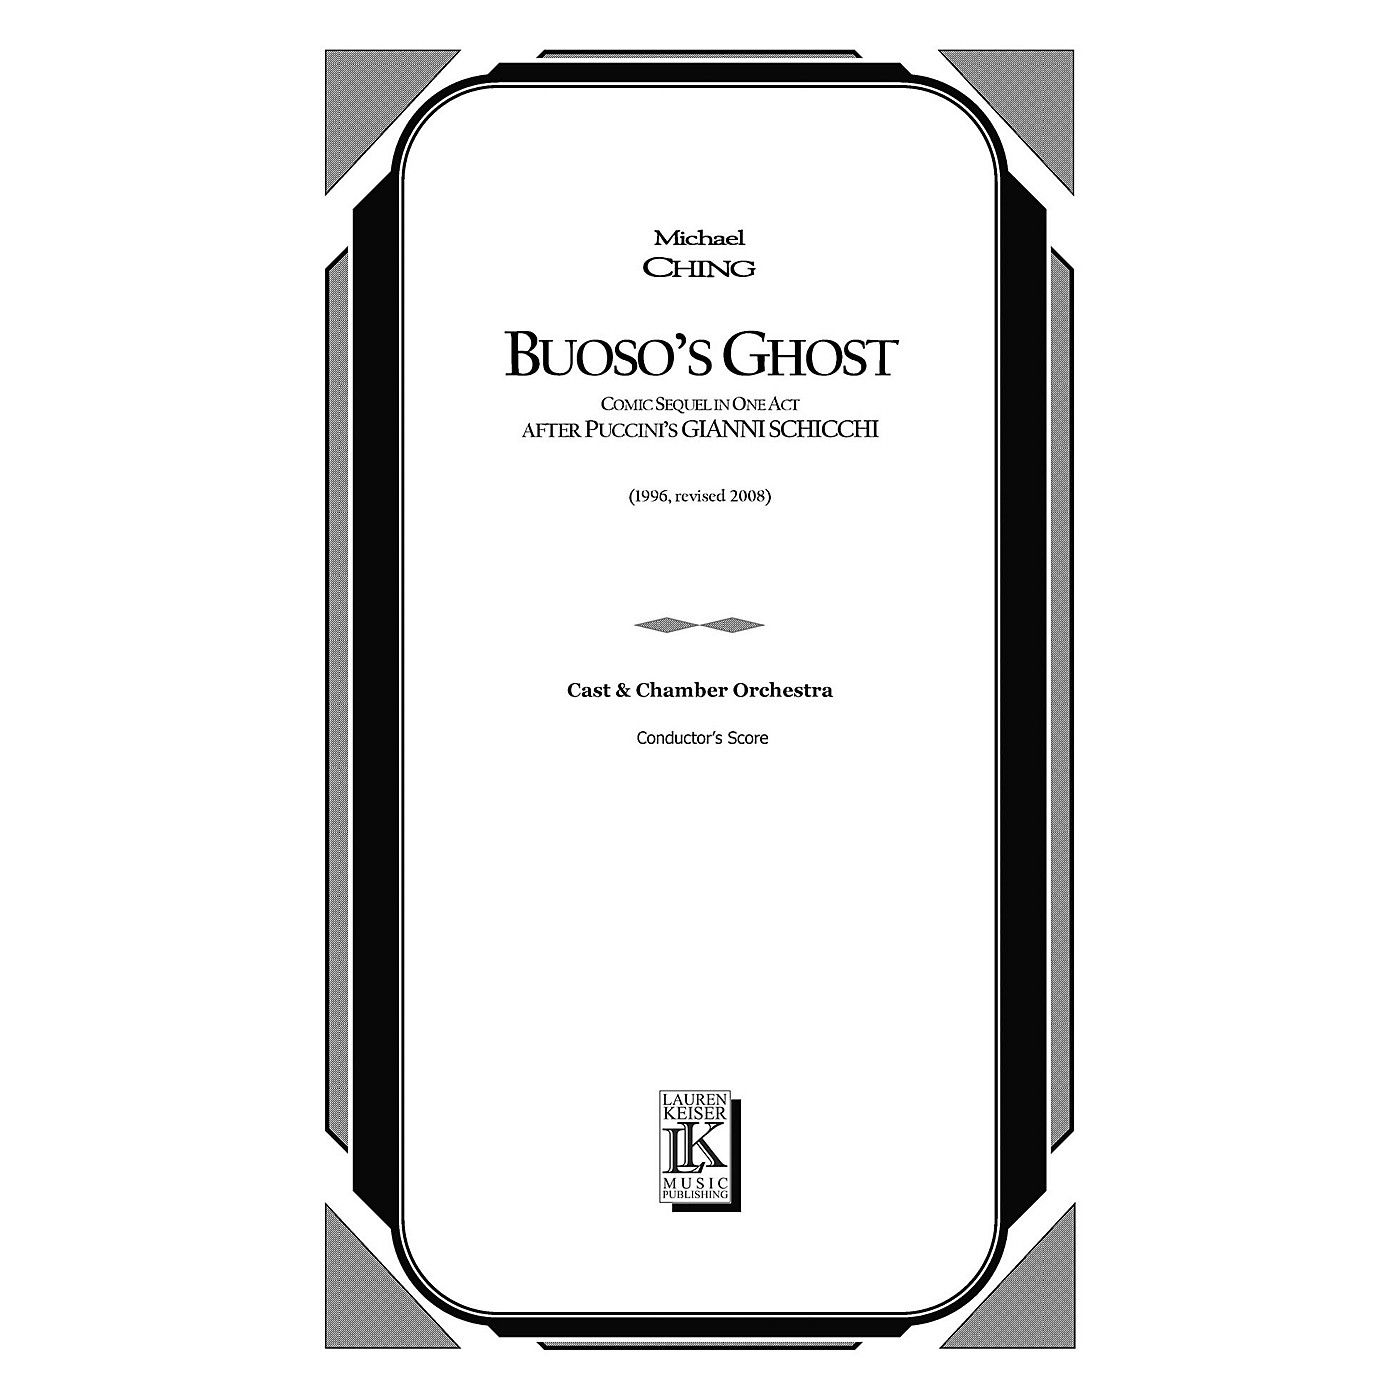 Lauren Keiser Music Publishing Buoso's Ghost (Comic Sequel in One Act After Puccini's Gianni Schicchi) Full Score by Michael Ching thumbnail